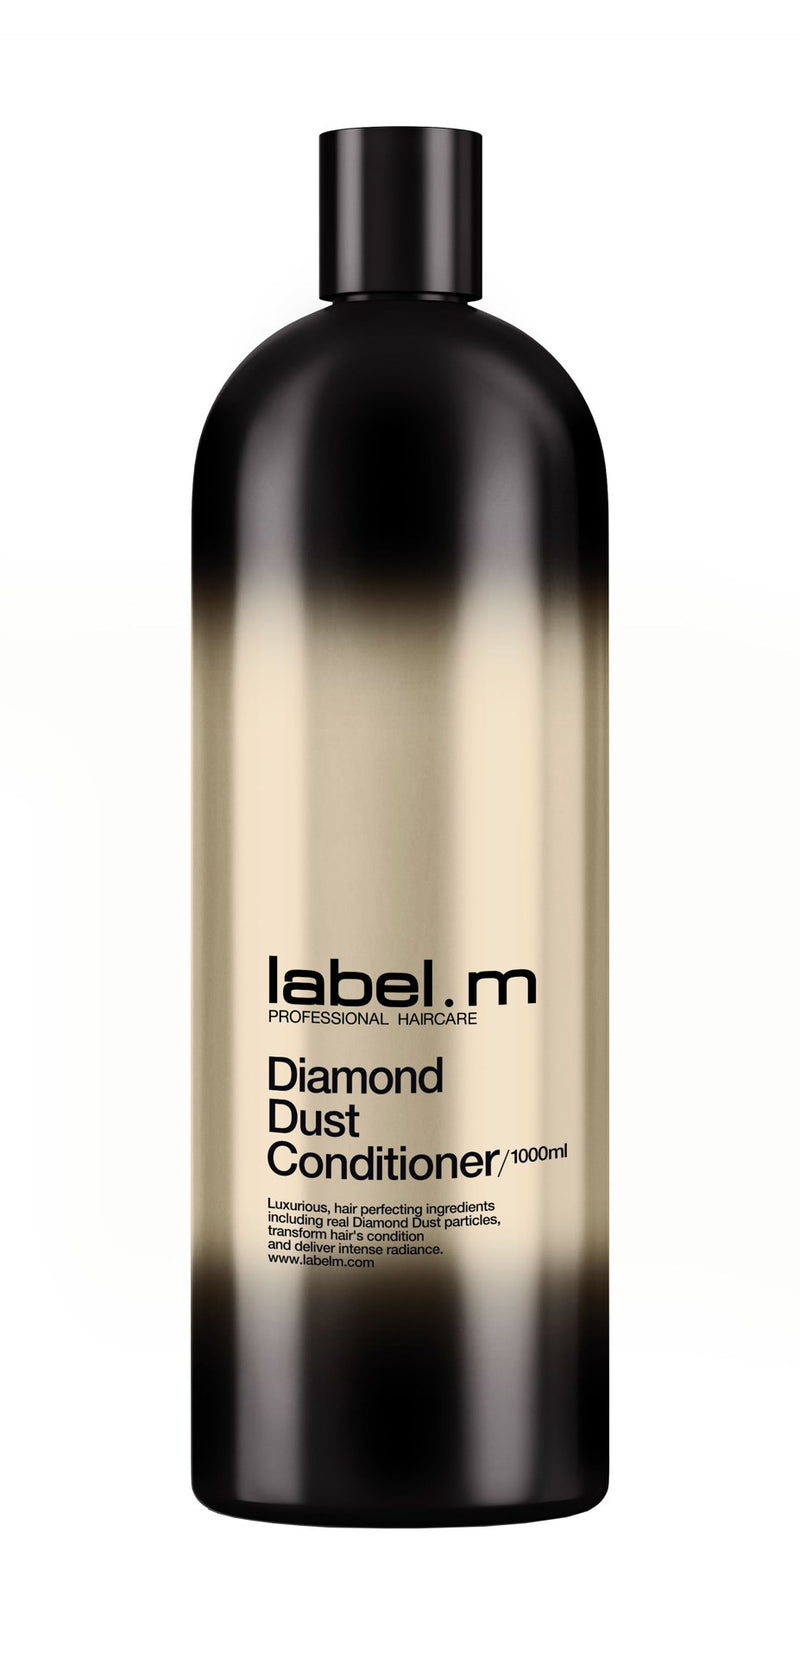 Diamond Dust Conditioner 1000ML